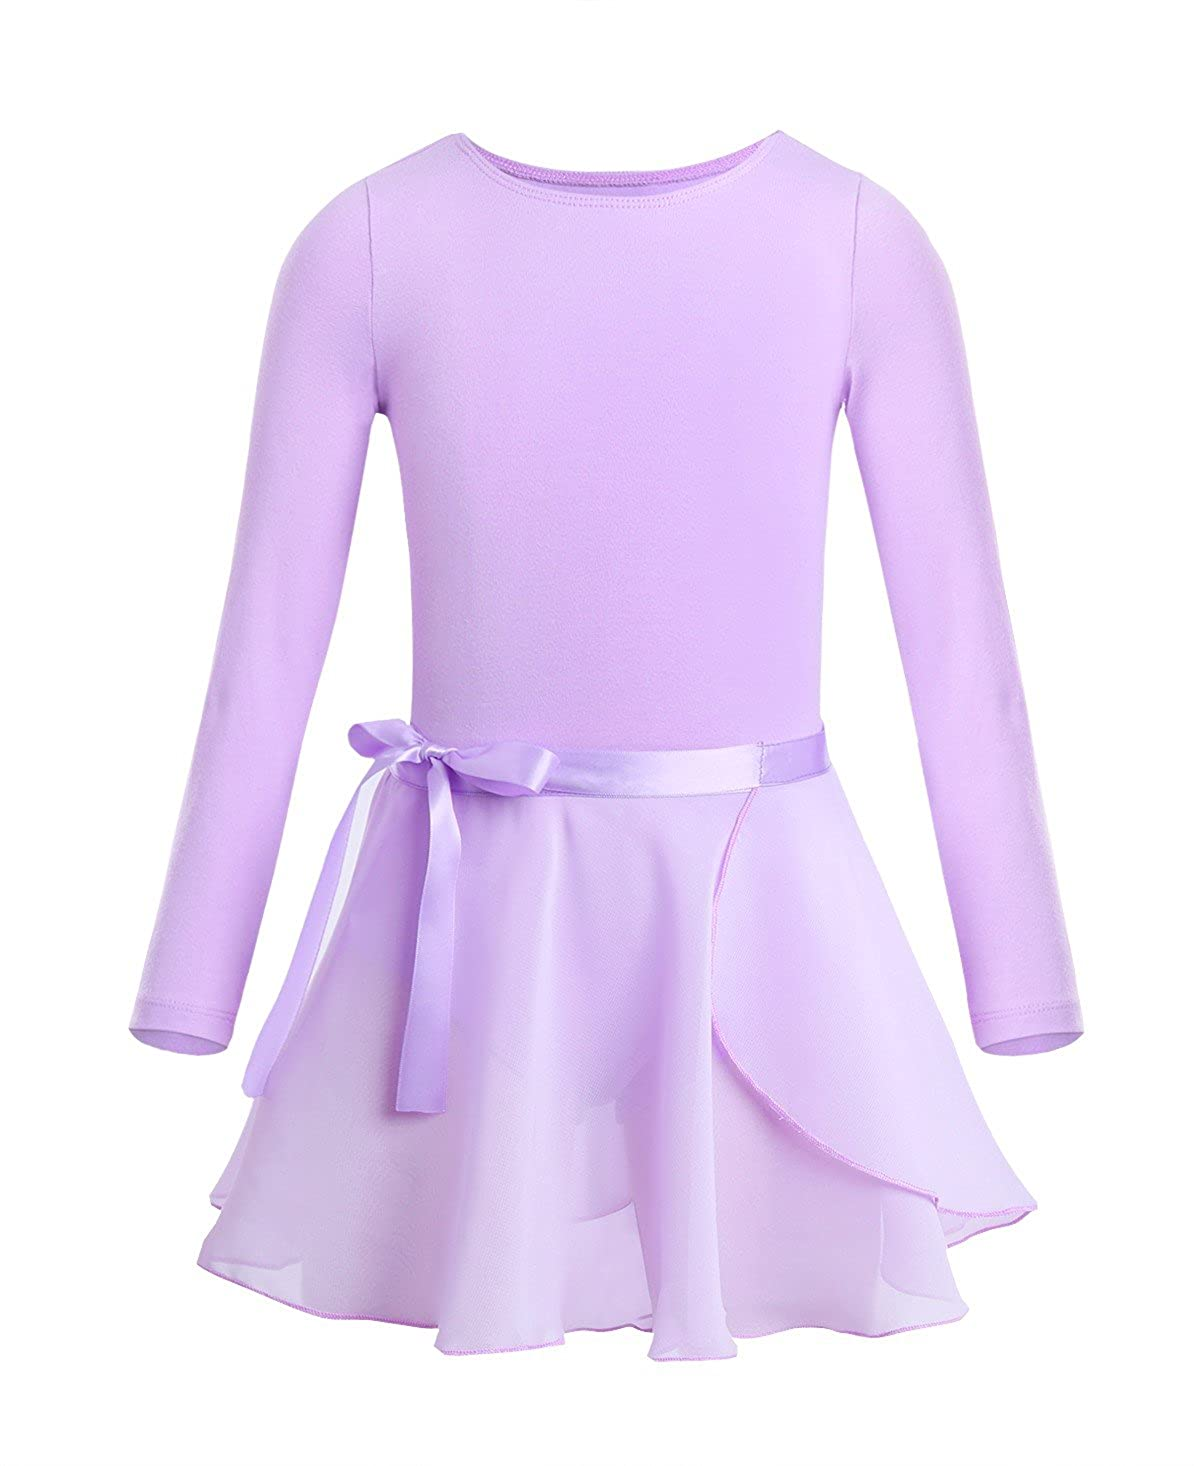 Lavender 10--12 Freebily Girls Team Basic Long Sleeve Leotard with Separate Pro Tight Skirt Dance Ballet Tutu Dress Outfit